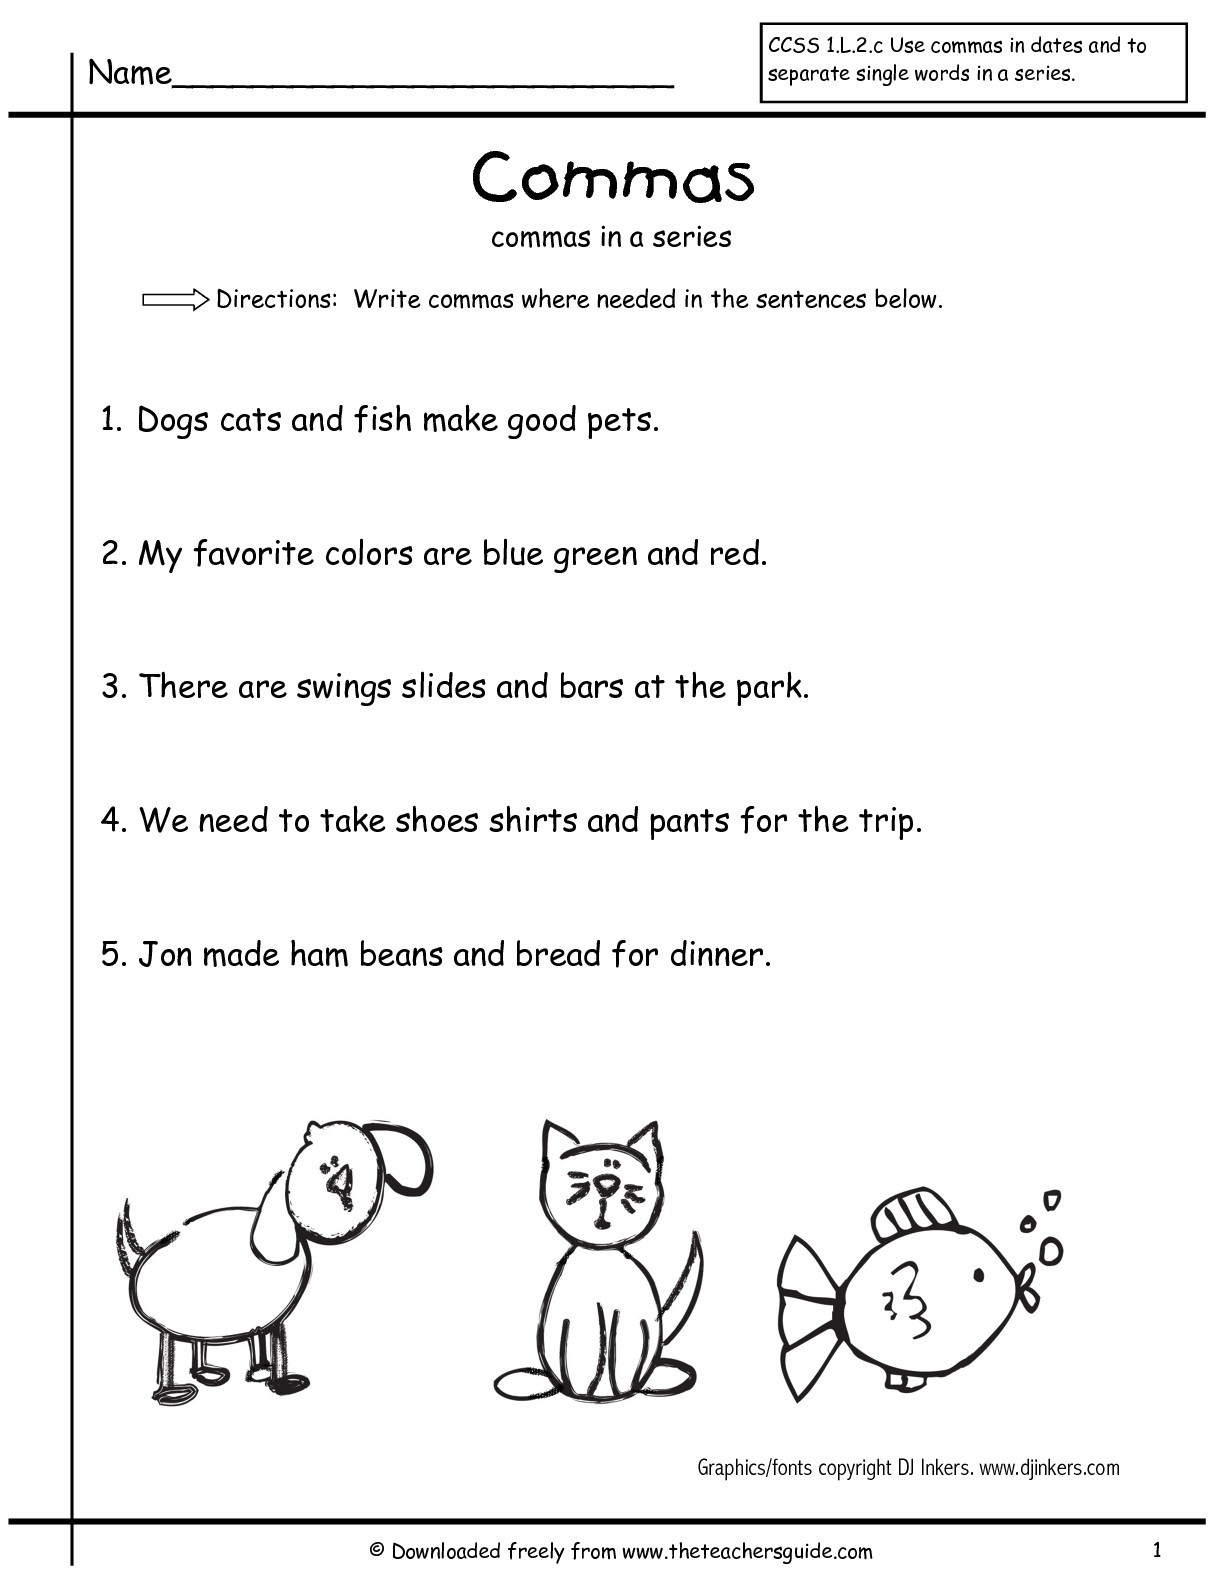 Commas Worksheets 5th Grade 63 Info Printable Worksheets Using Mas In A Series Free